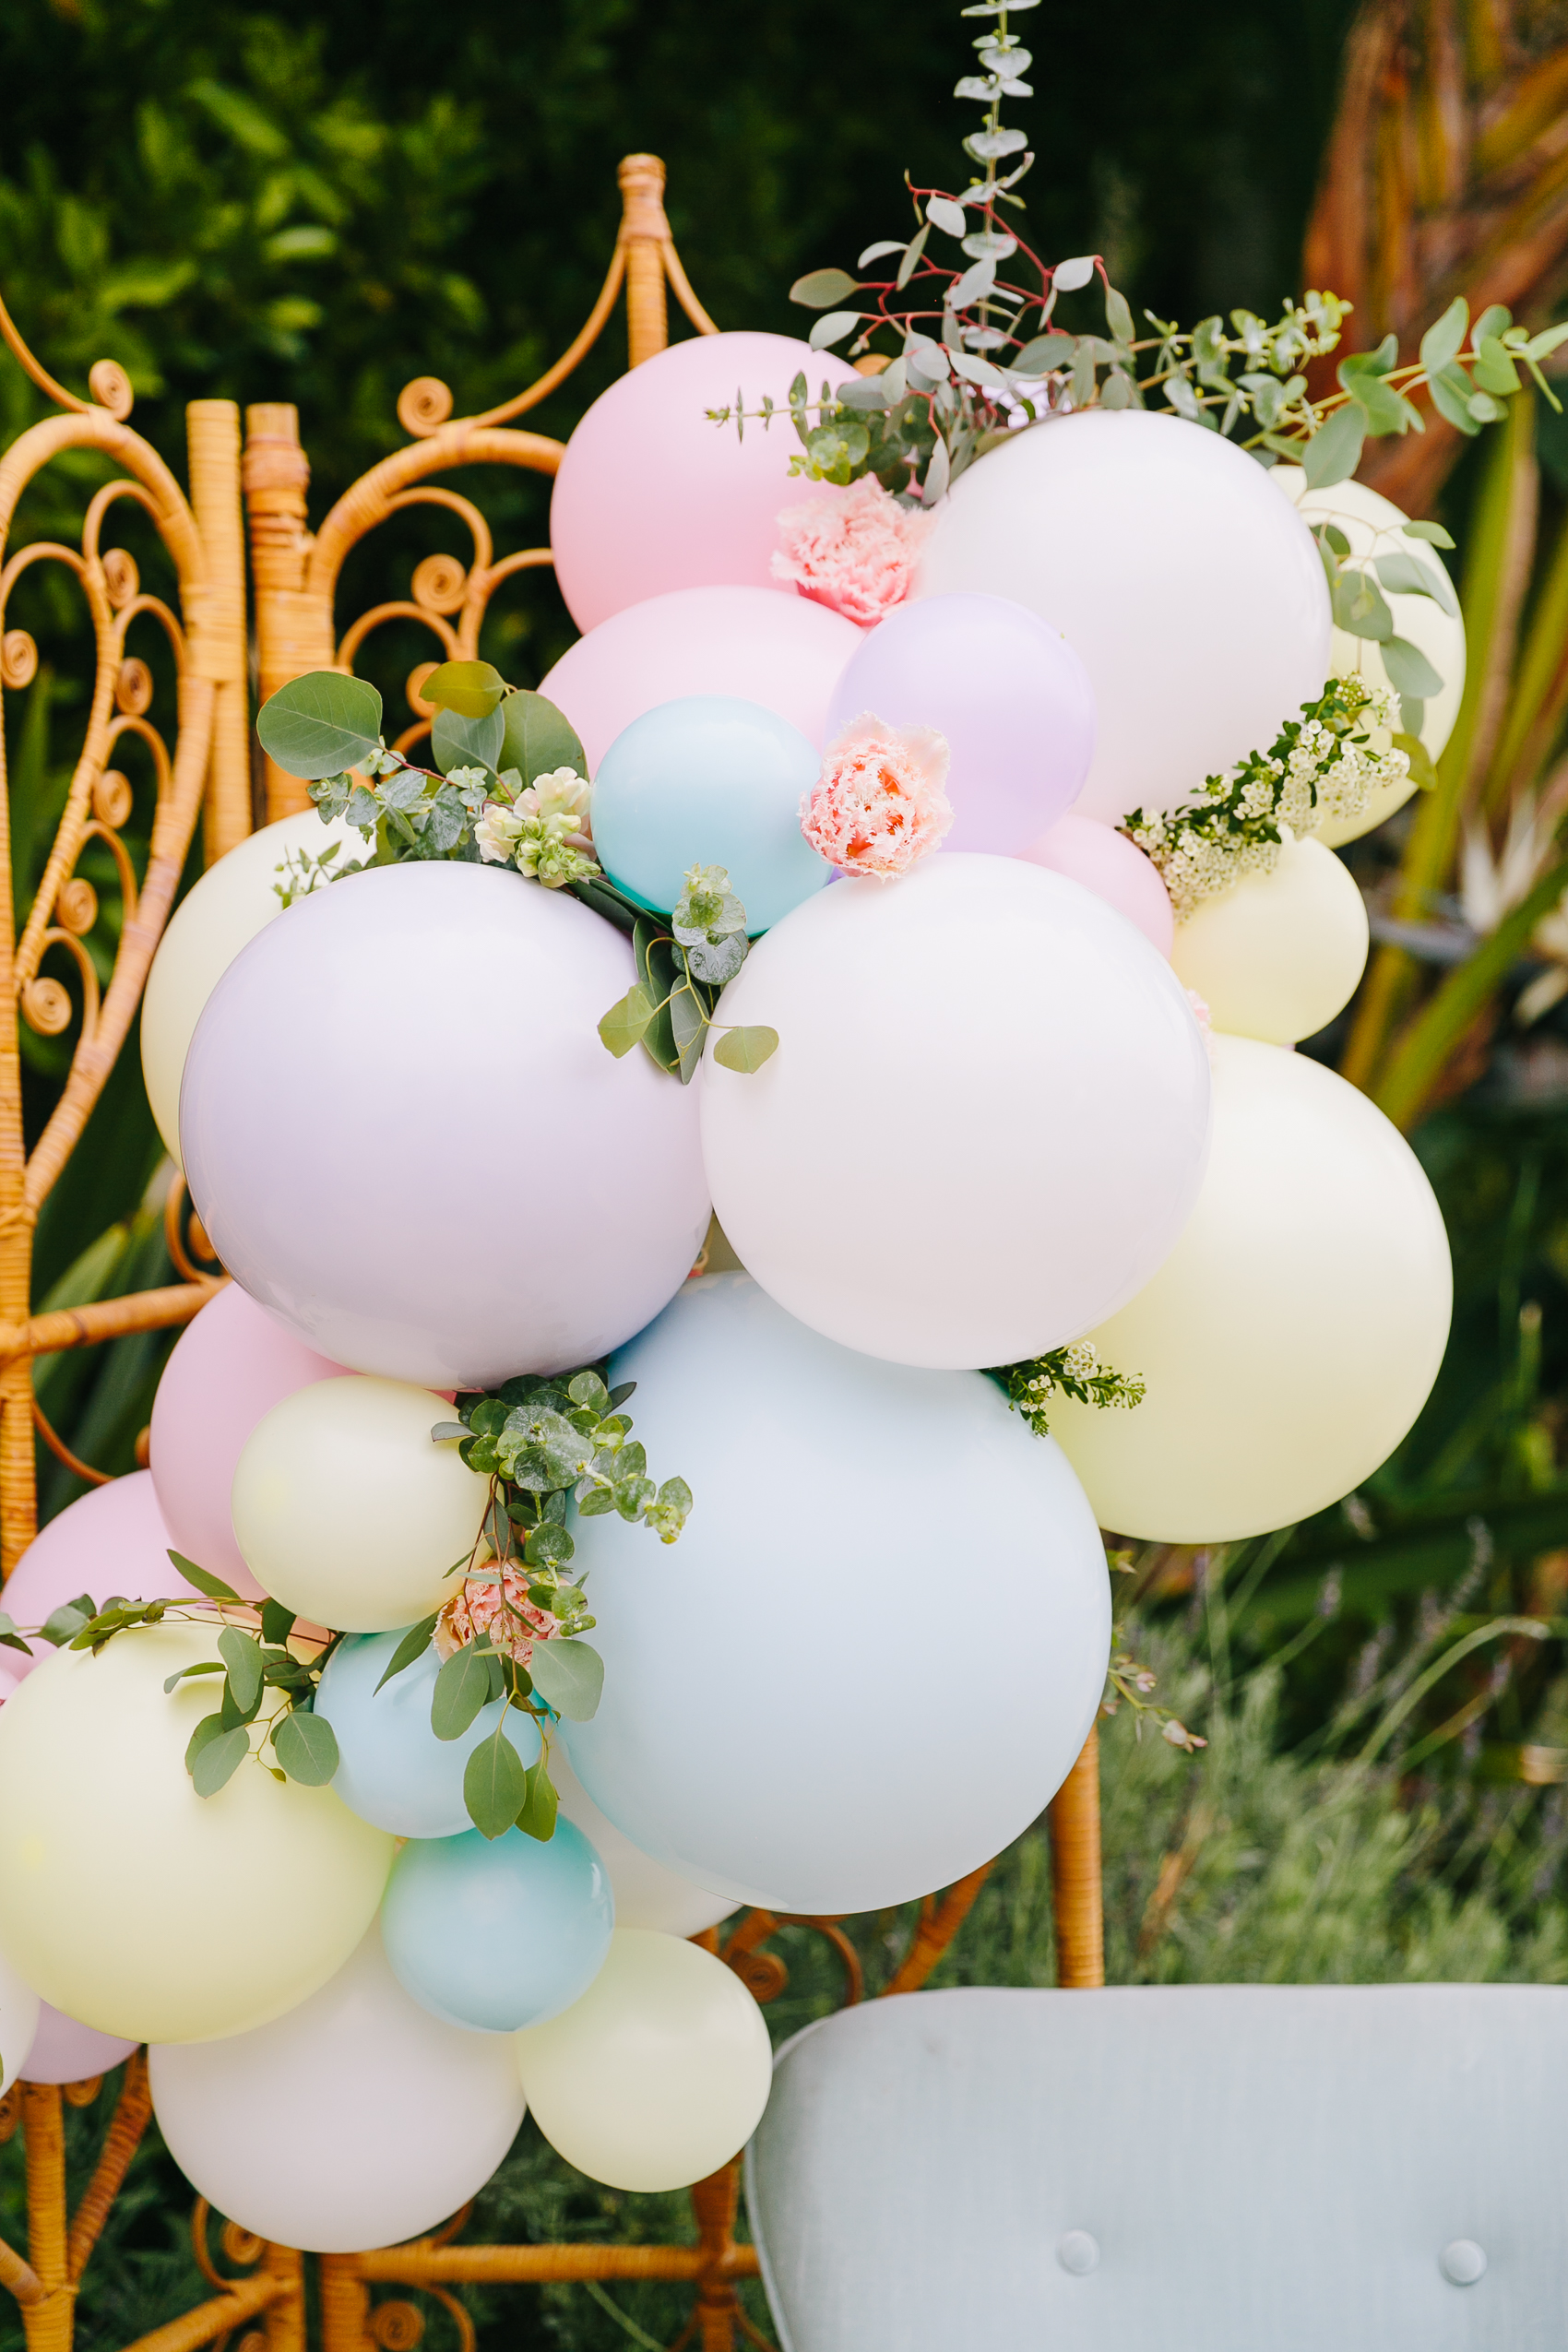 Los_Angeles_Family_Photographer_Luxury_Childrens_Party_Beverly_Hills_Unicorn_Birthday_Party-0086.jpg